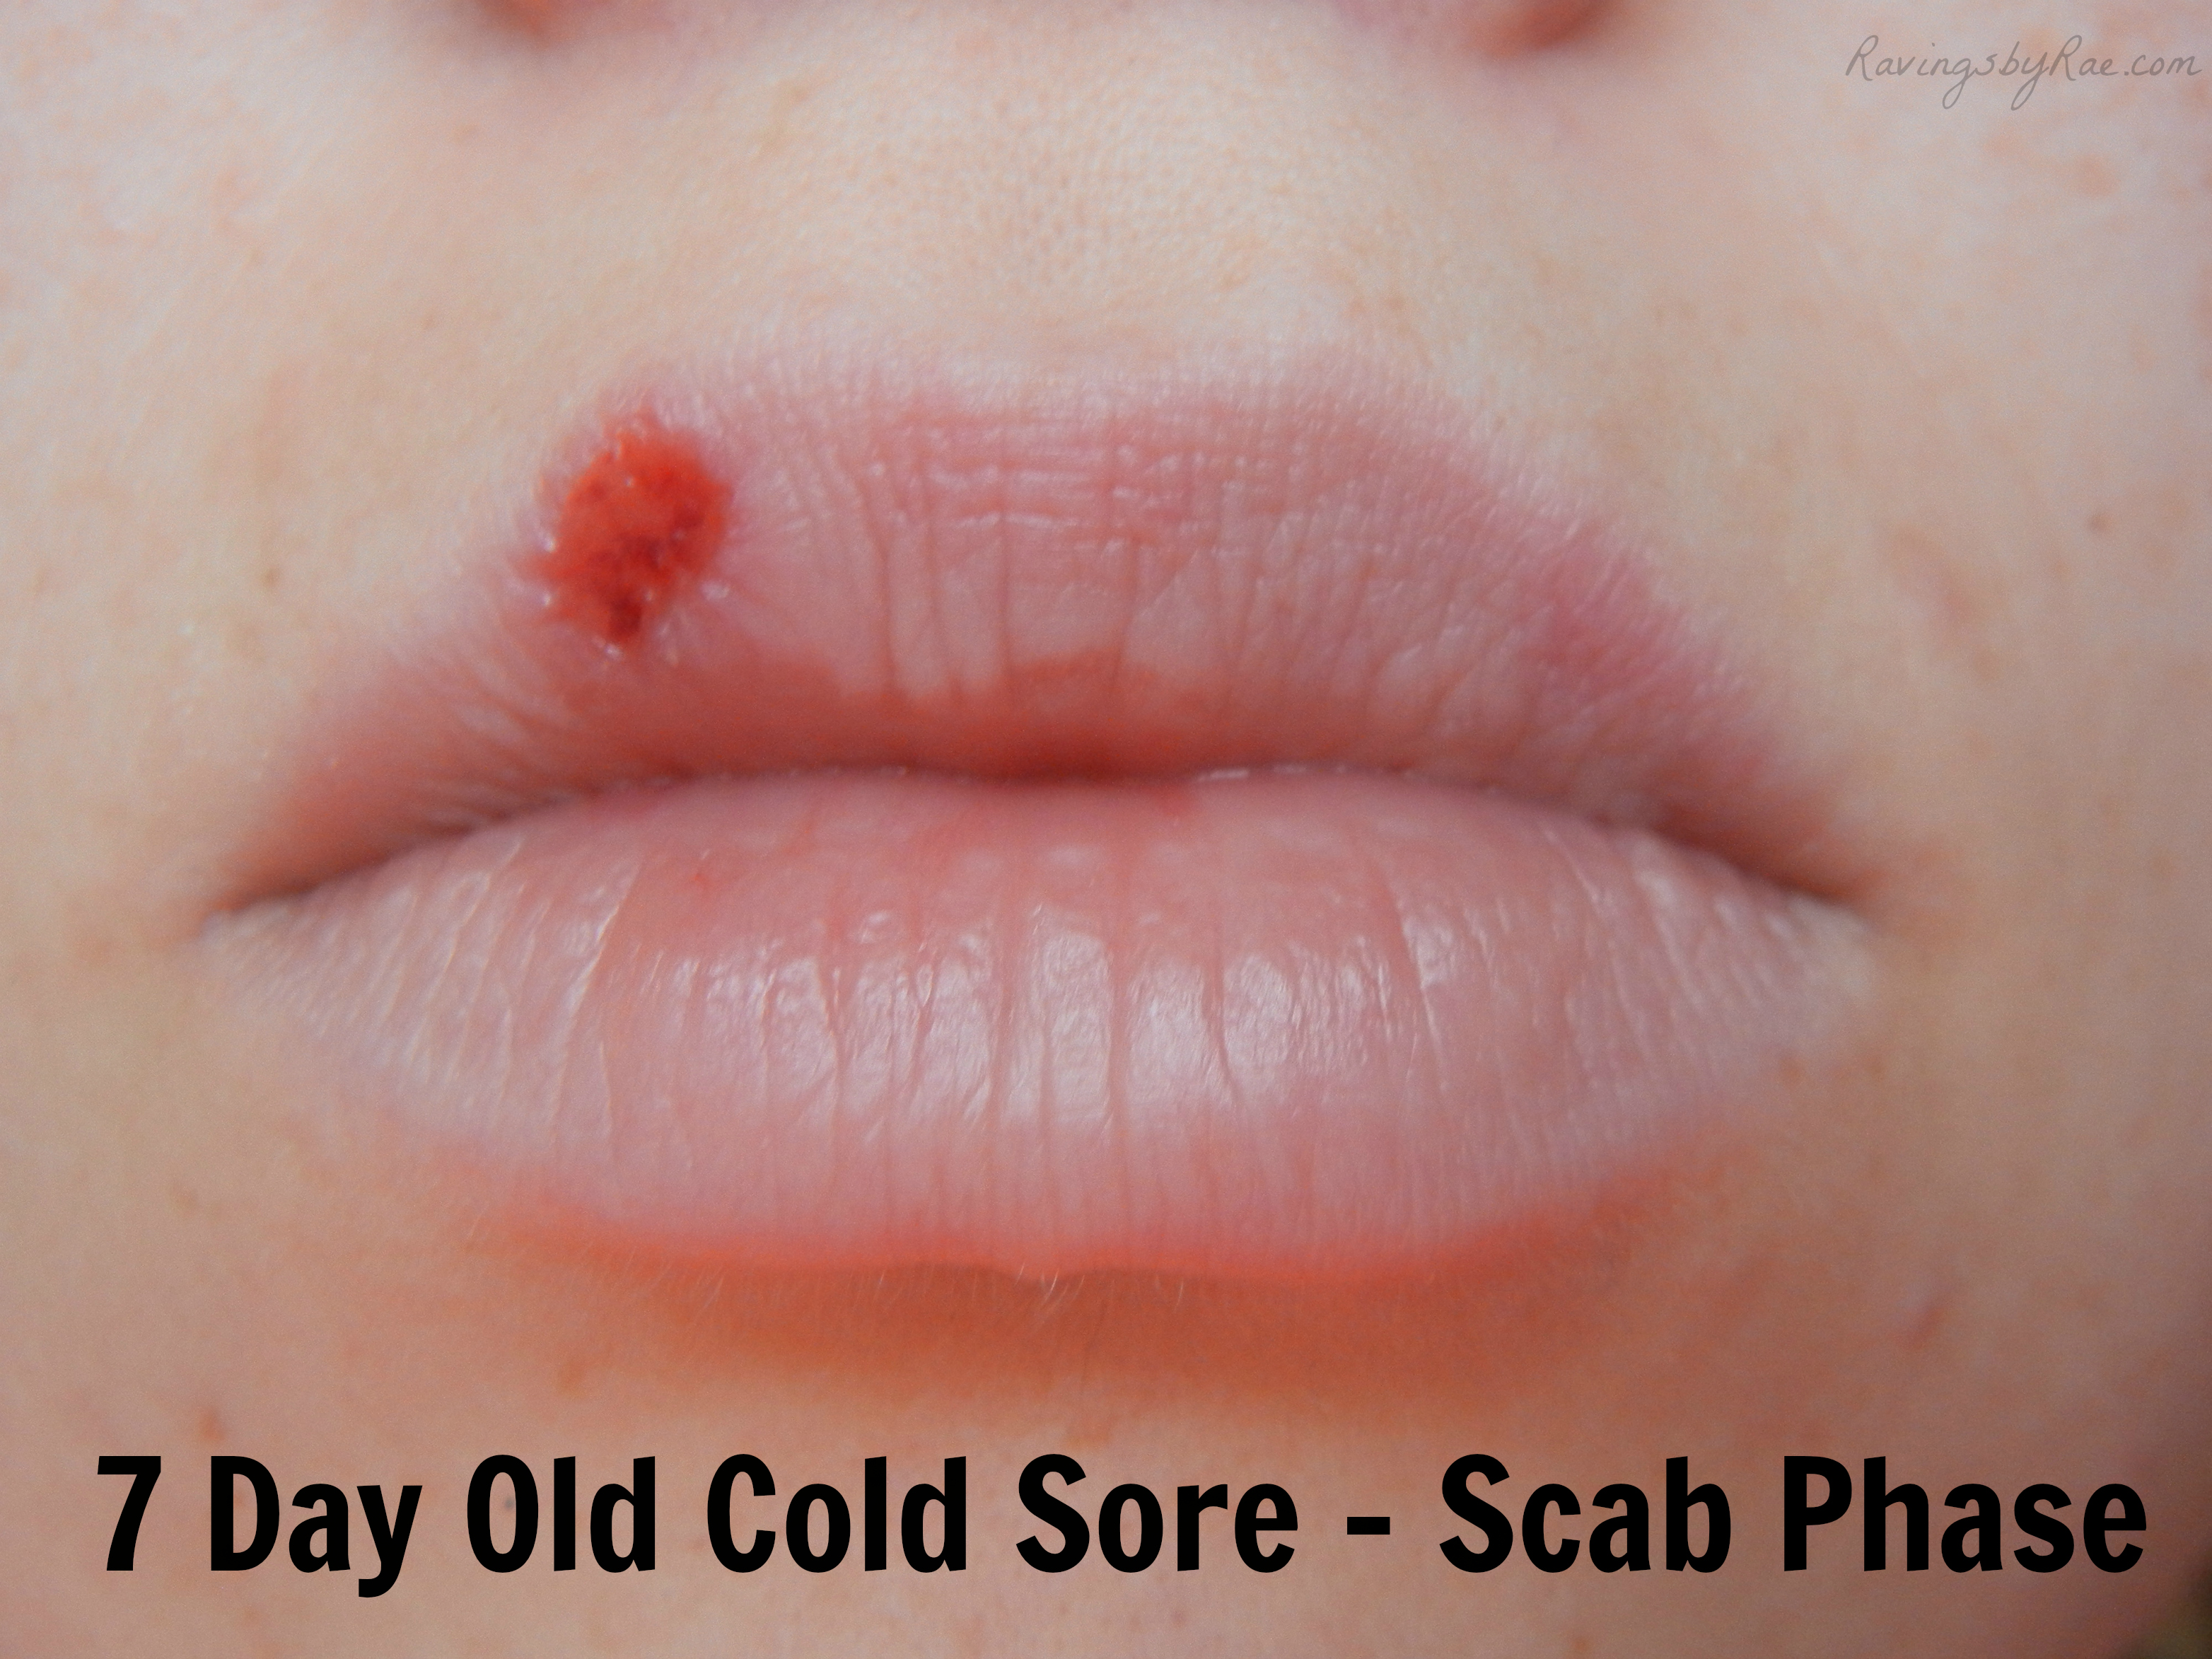 Cold Sore pic 1